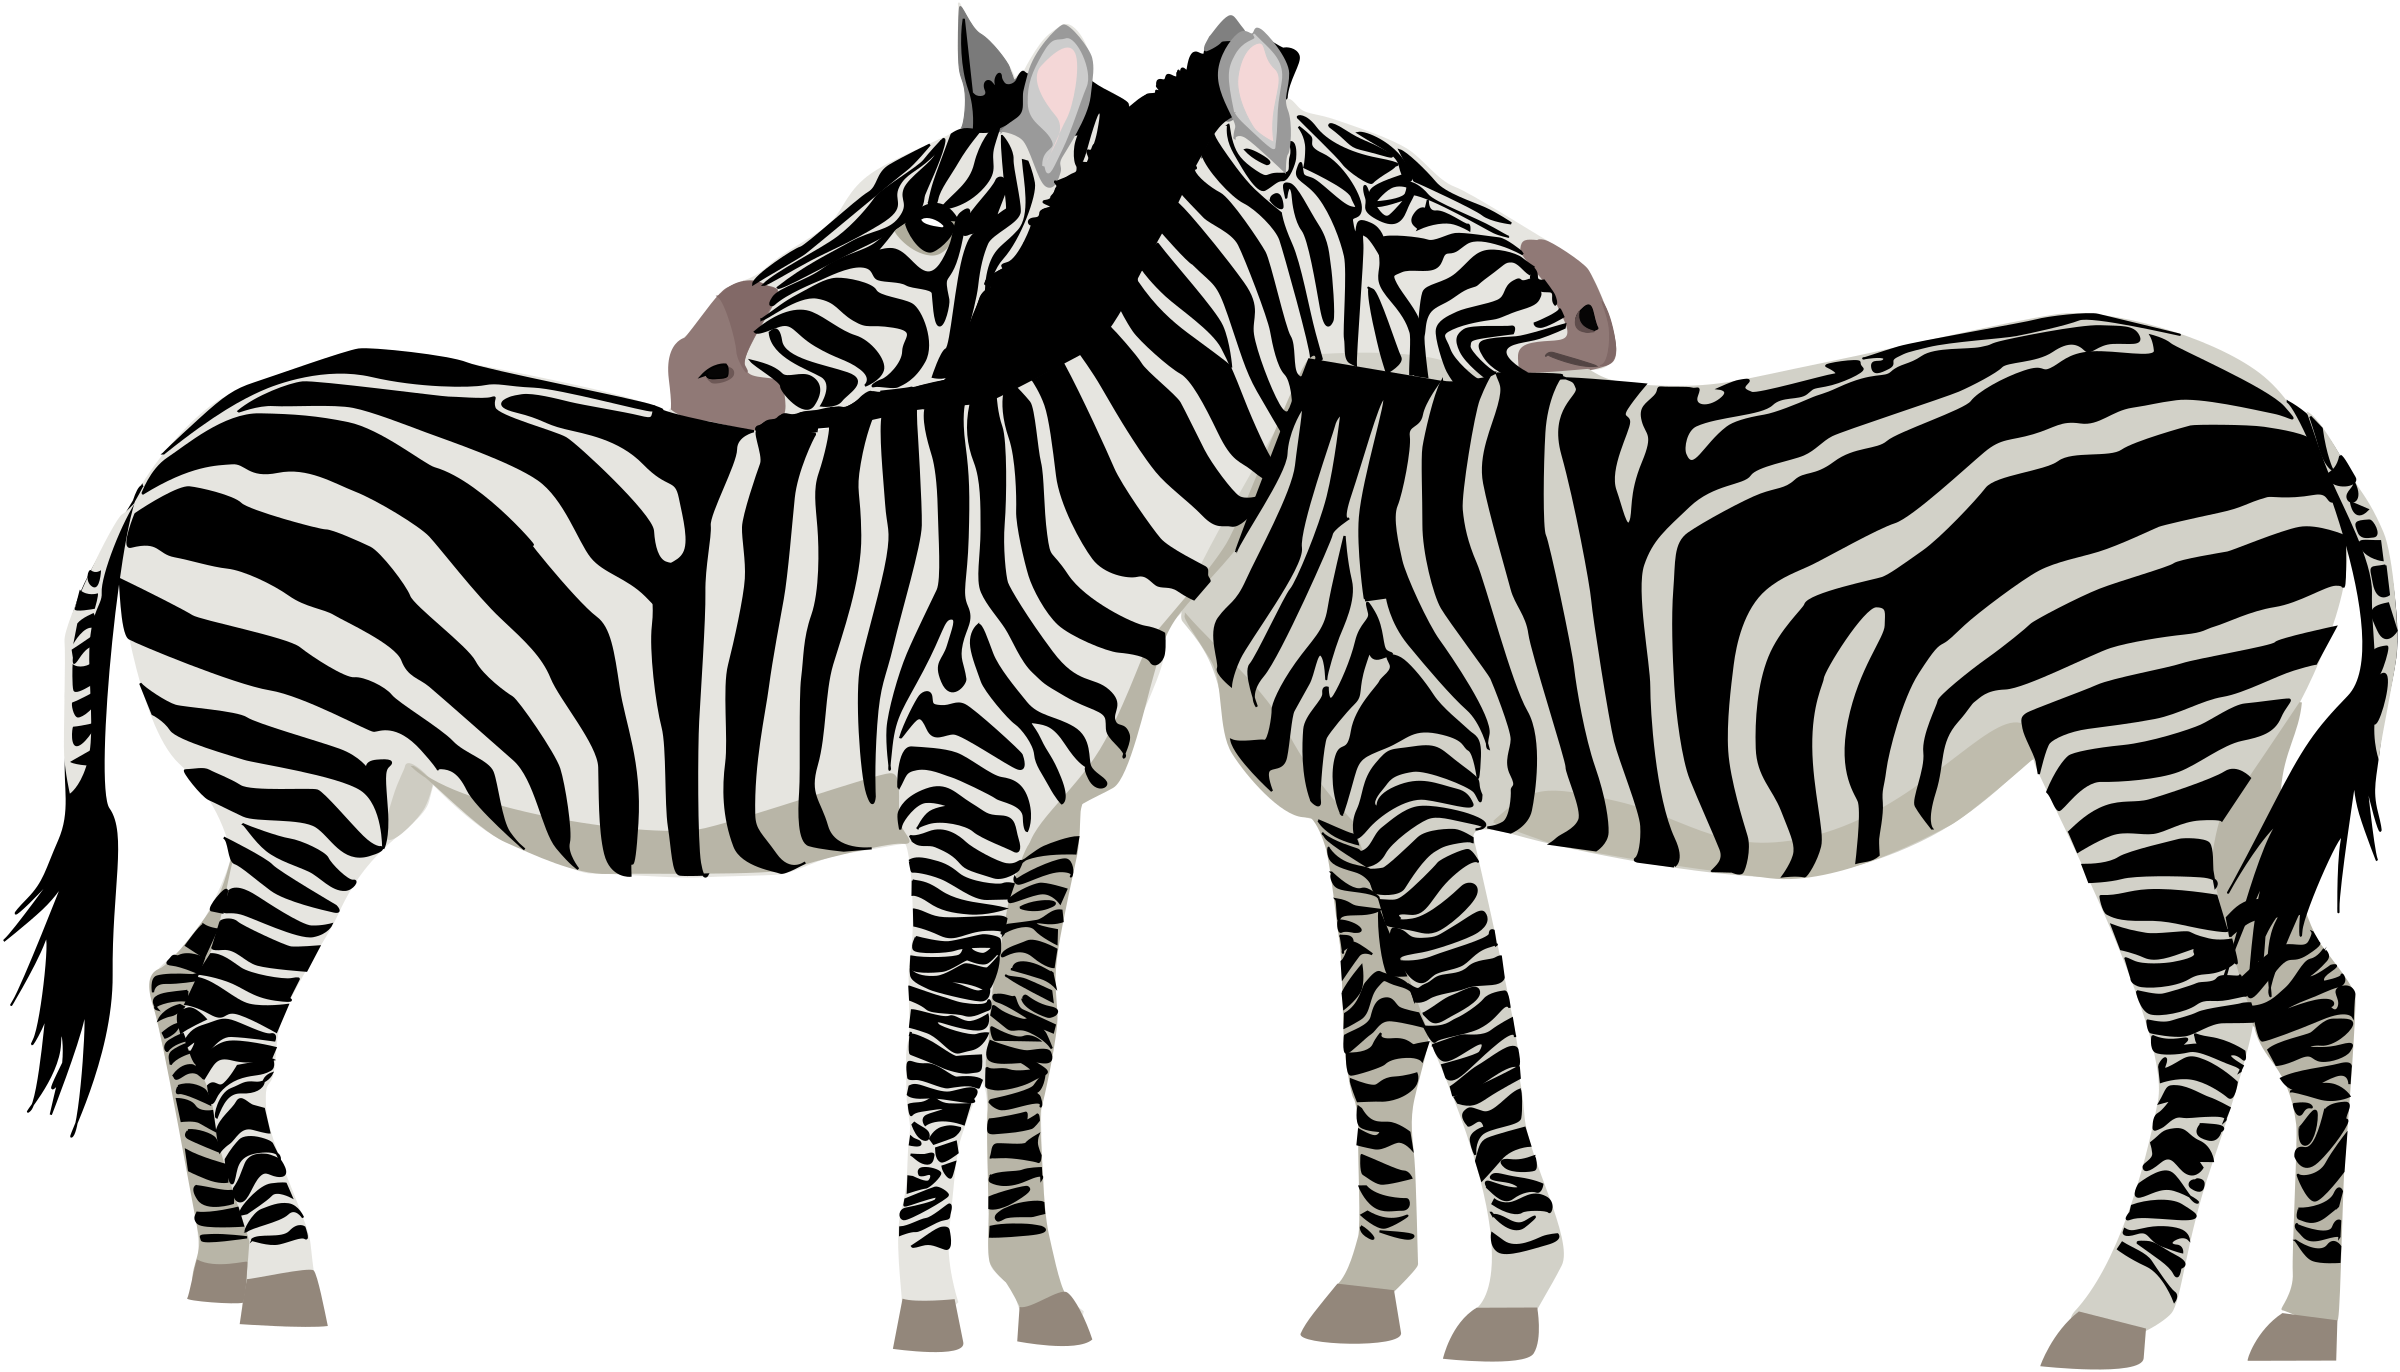 Zebras by ha1flosse